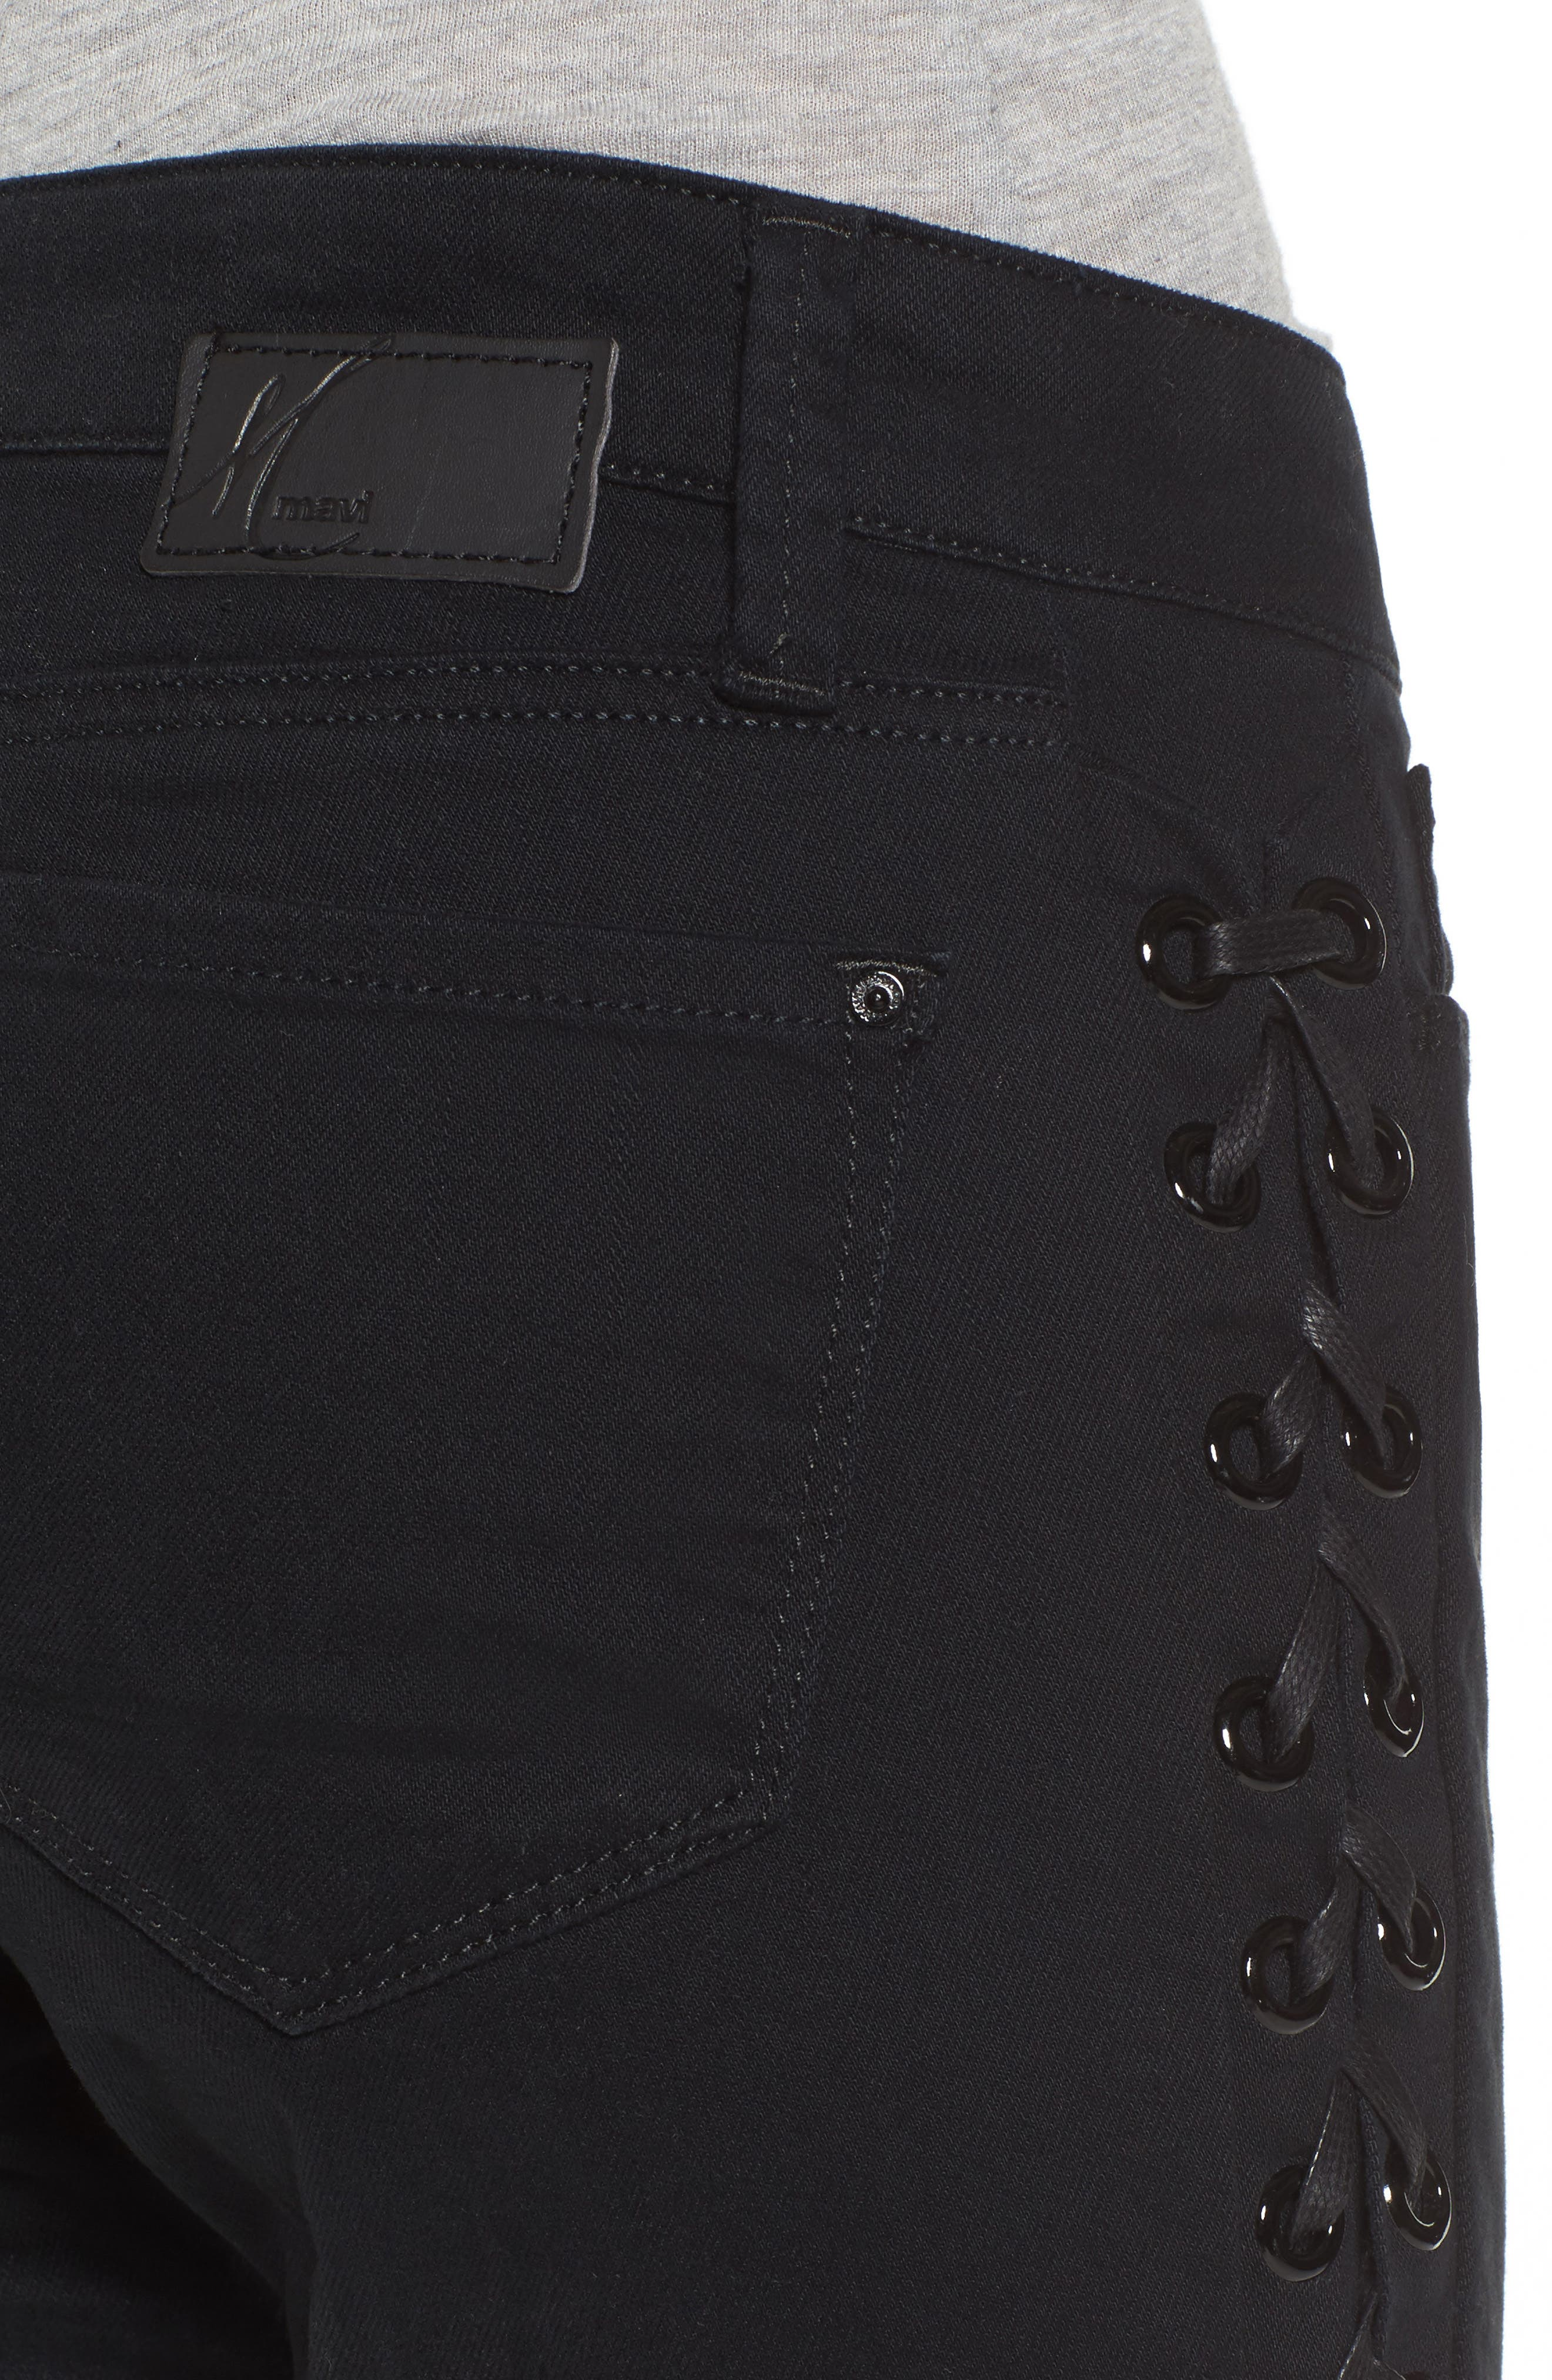 Adriana Lace-Up Super Skinny Jeans,                             Alternate thumbnail 4, color,                             001